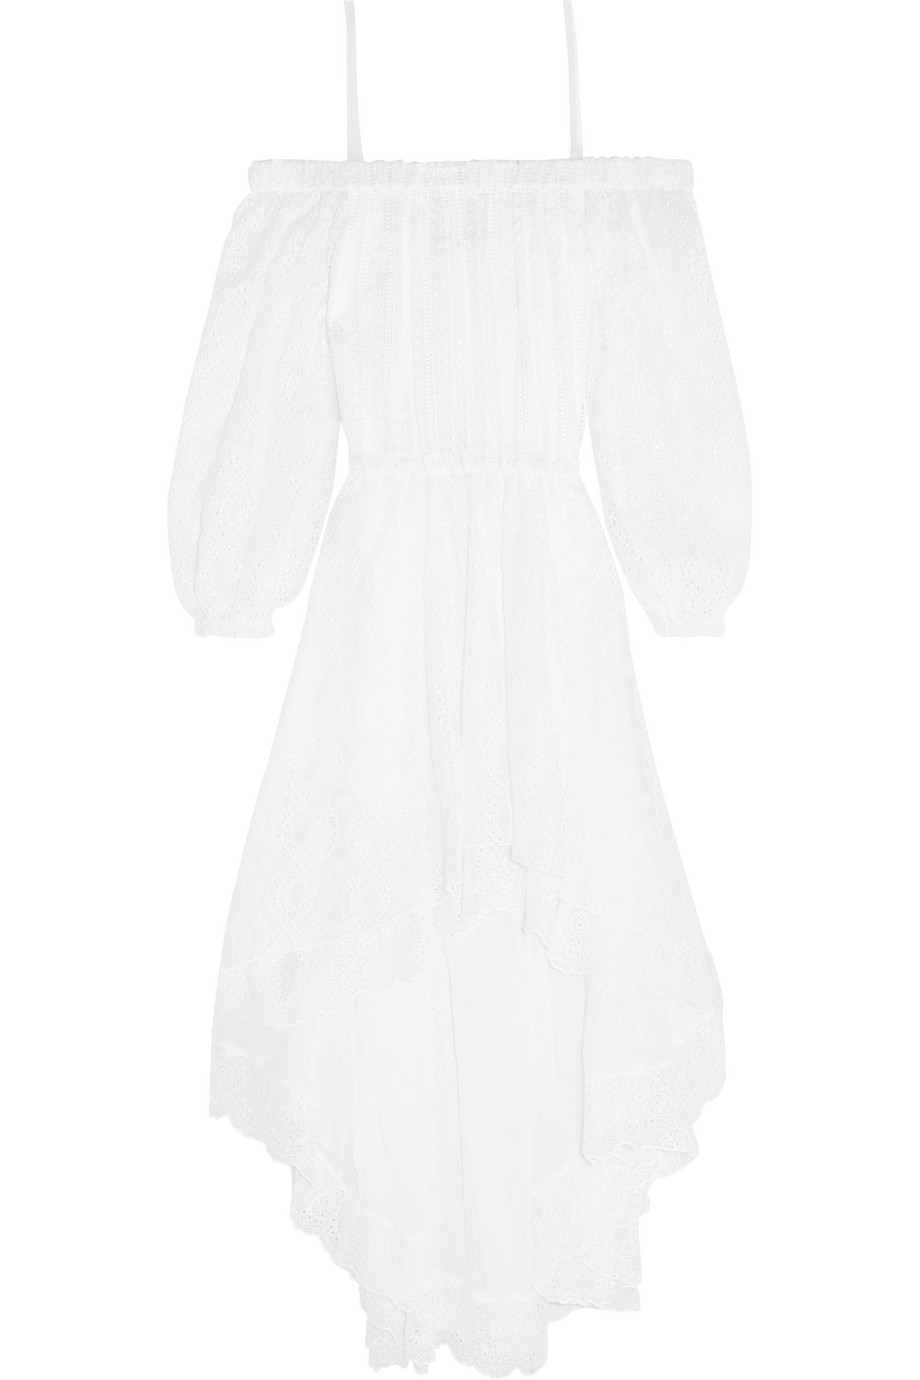 Off-the-Shoulder Broderie Anglaise Cotton-Blend Dress, White, Women's - Floral, Size: 46